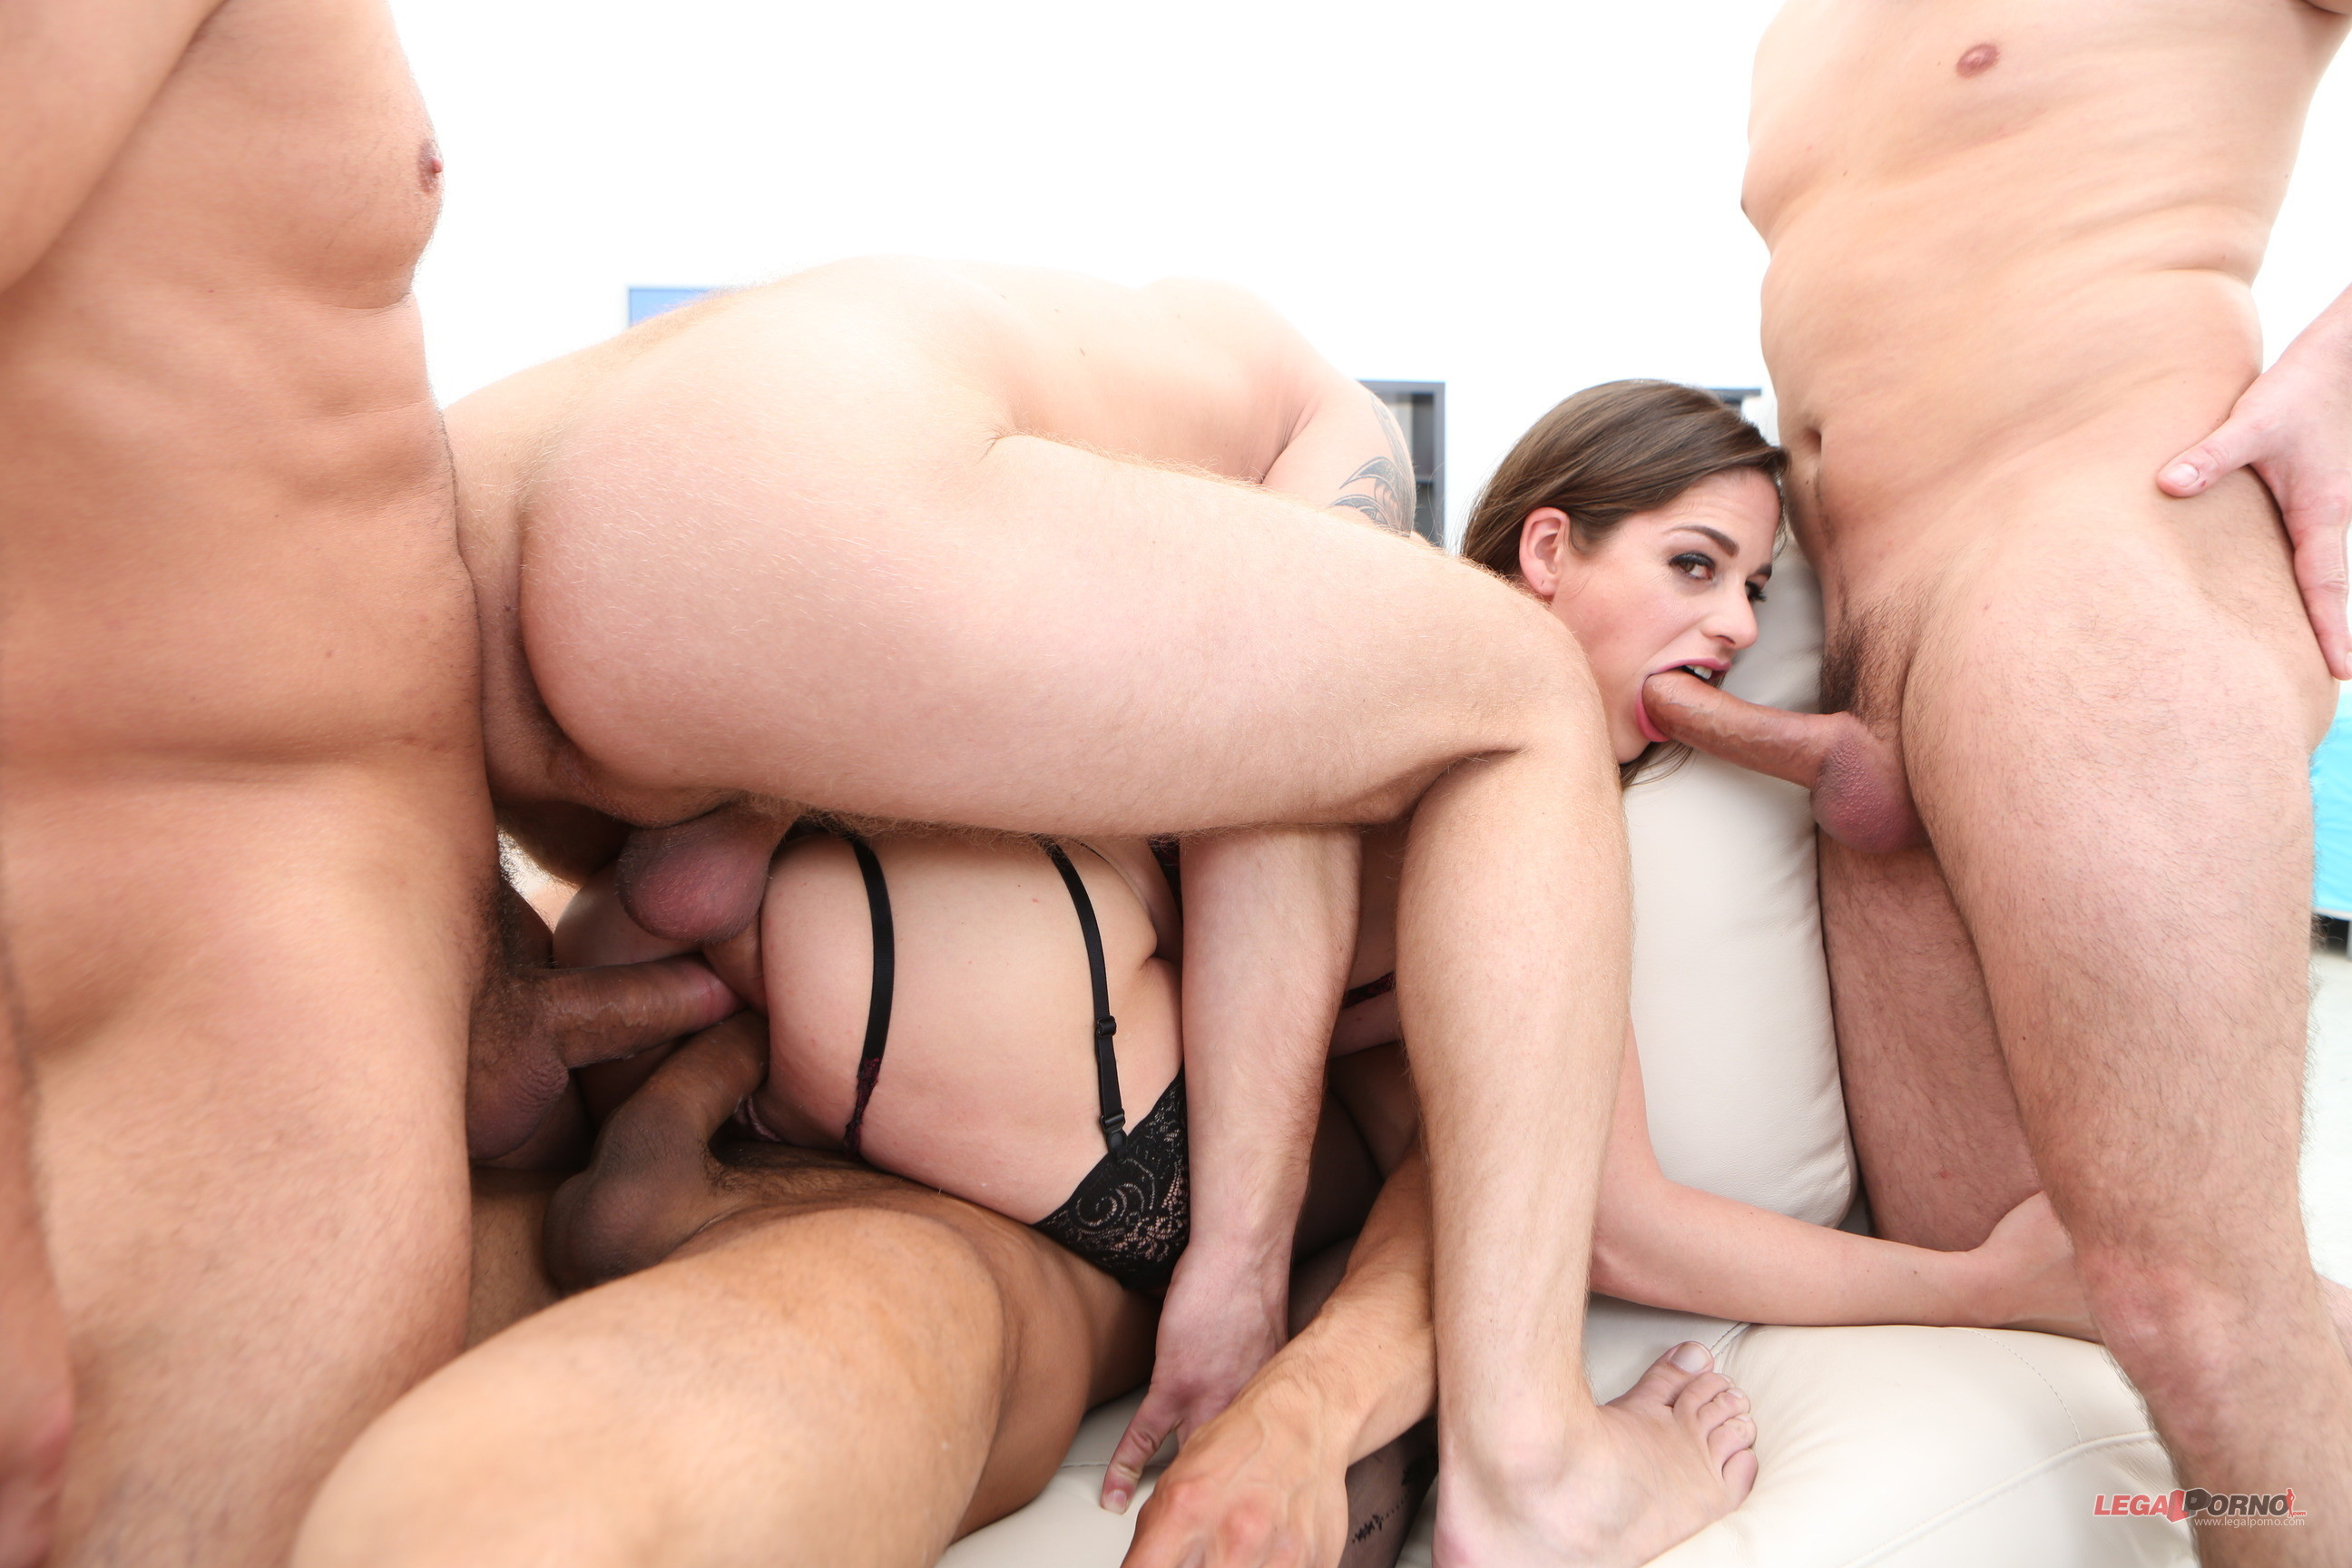 husband surprise wife porn movies interracial lingerie